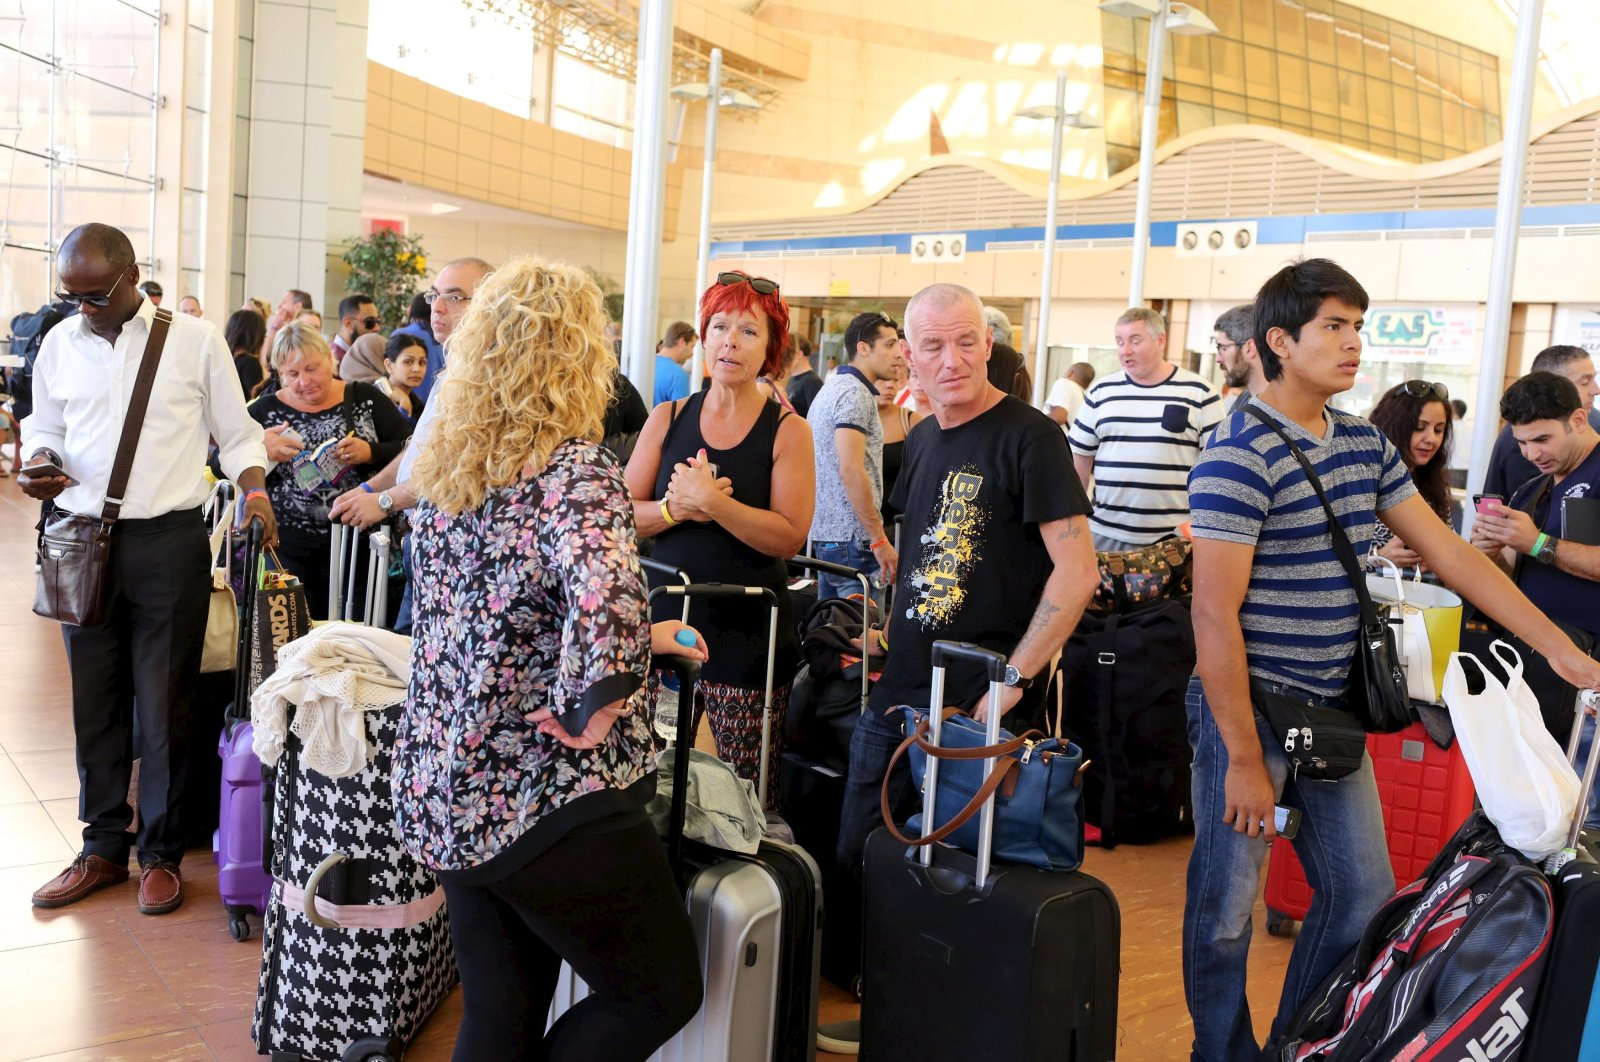 Passengers from an Easy Jet flight to Britain which got canceled wait at the airport of the Red Sea resort of Sharm el-Sheikh till they get another announcement, Sharm el-Sheikh, Egypt, Nov. 6, 2015. (Reuters Photo)